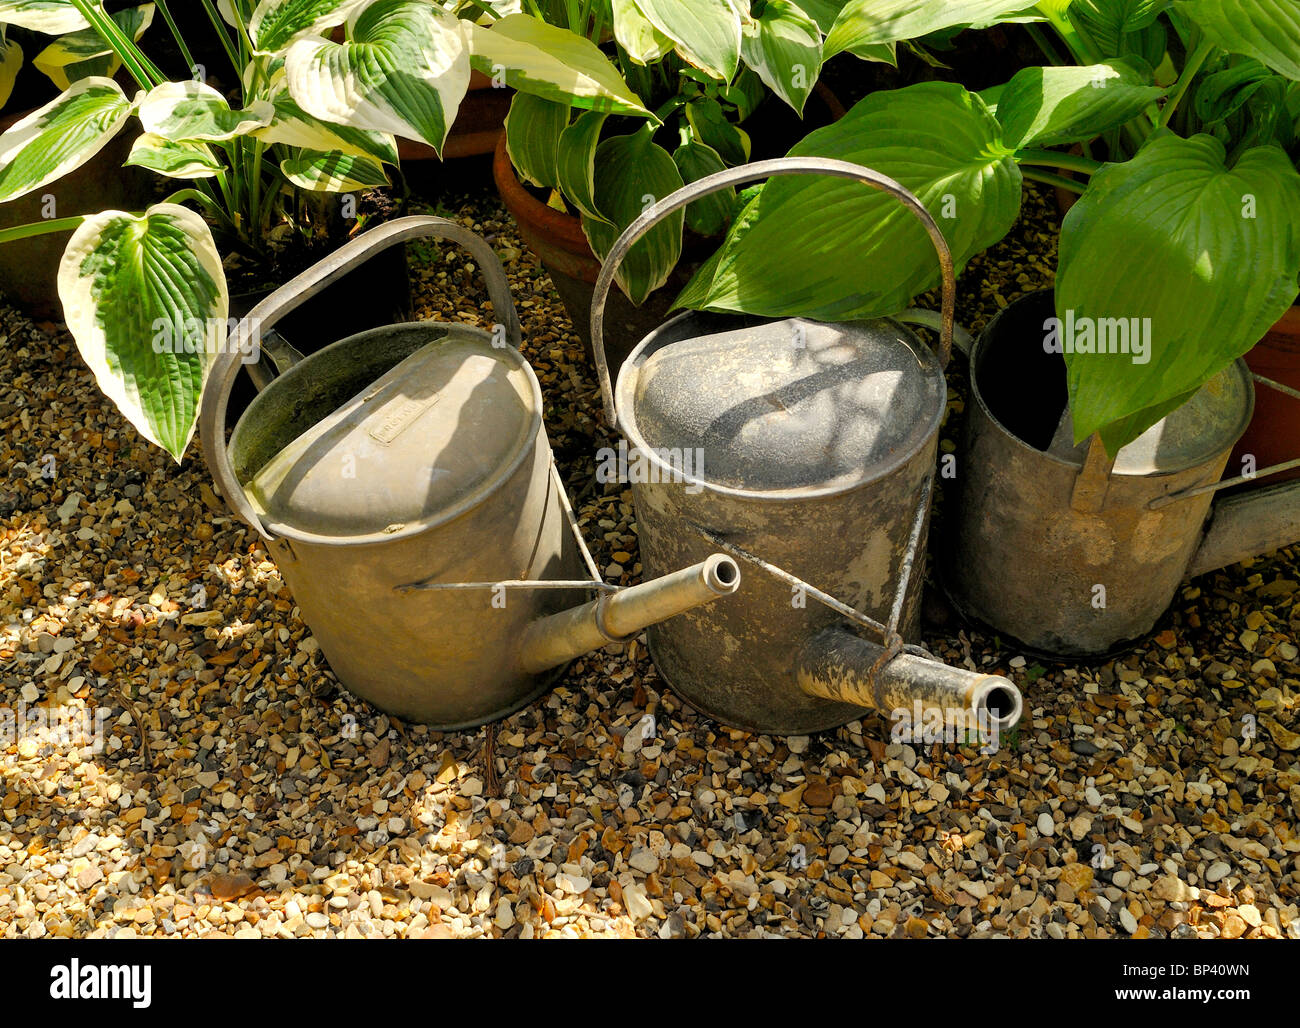 OLD METAL WATERING CANS - Stock Image